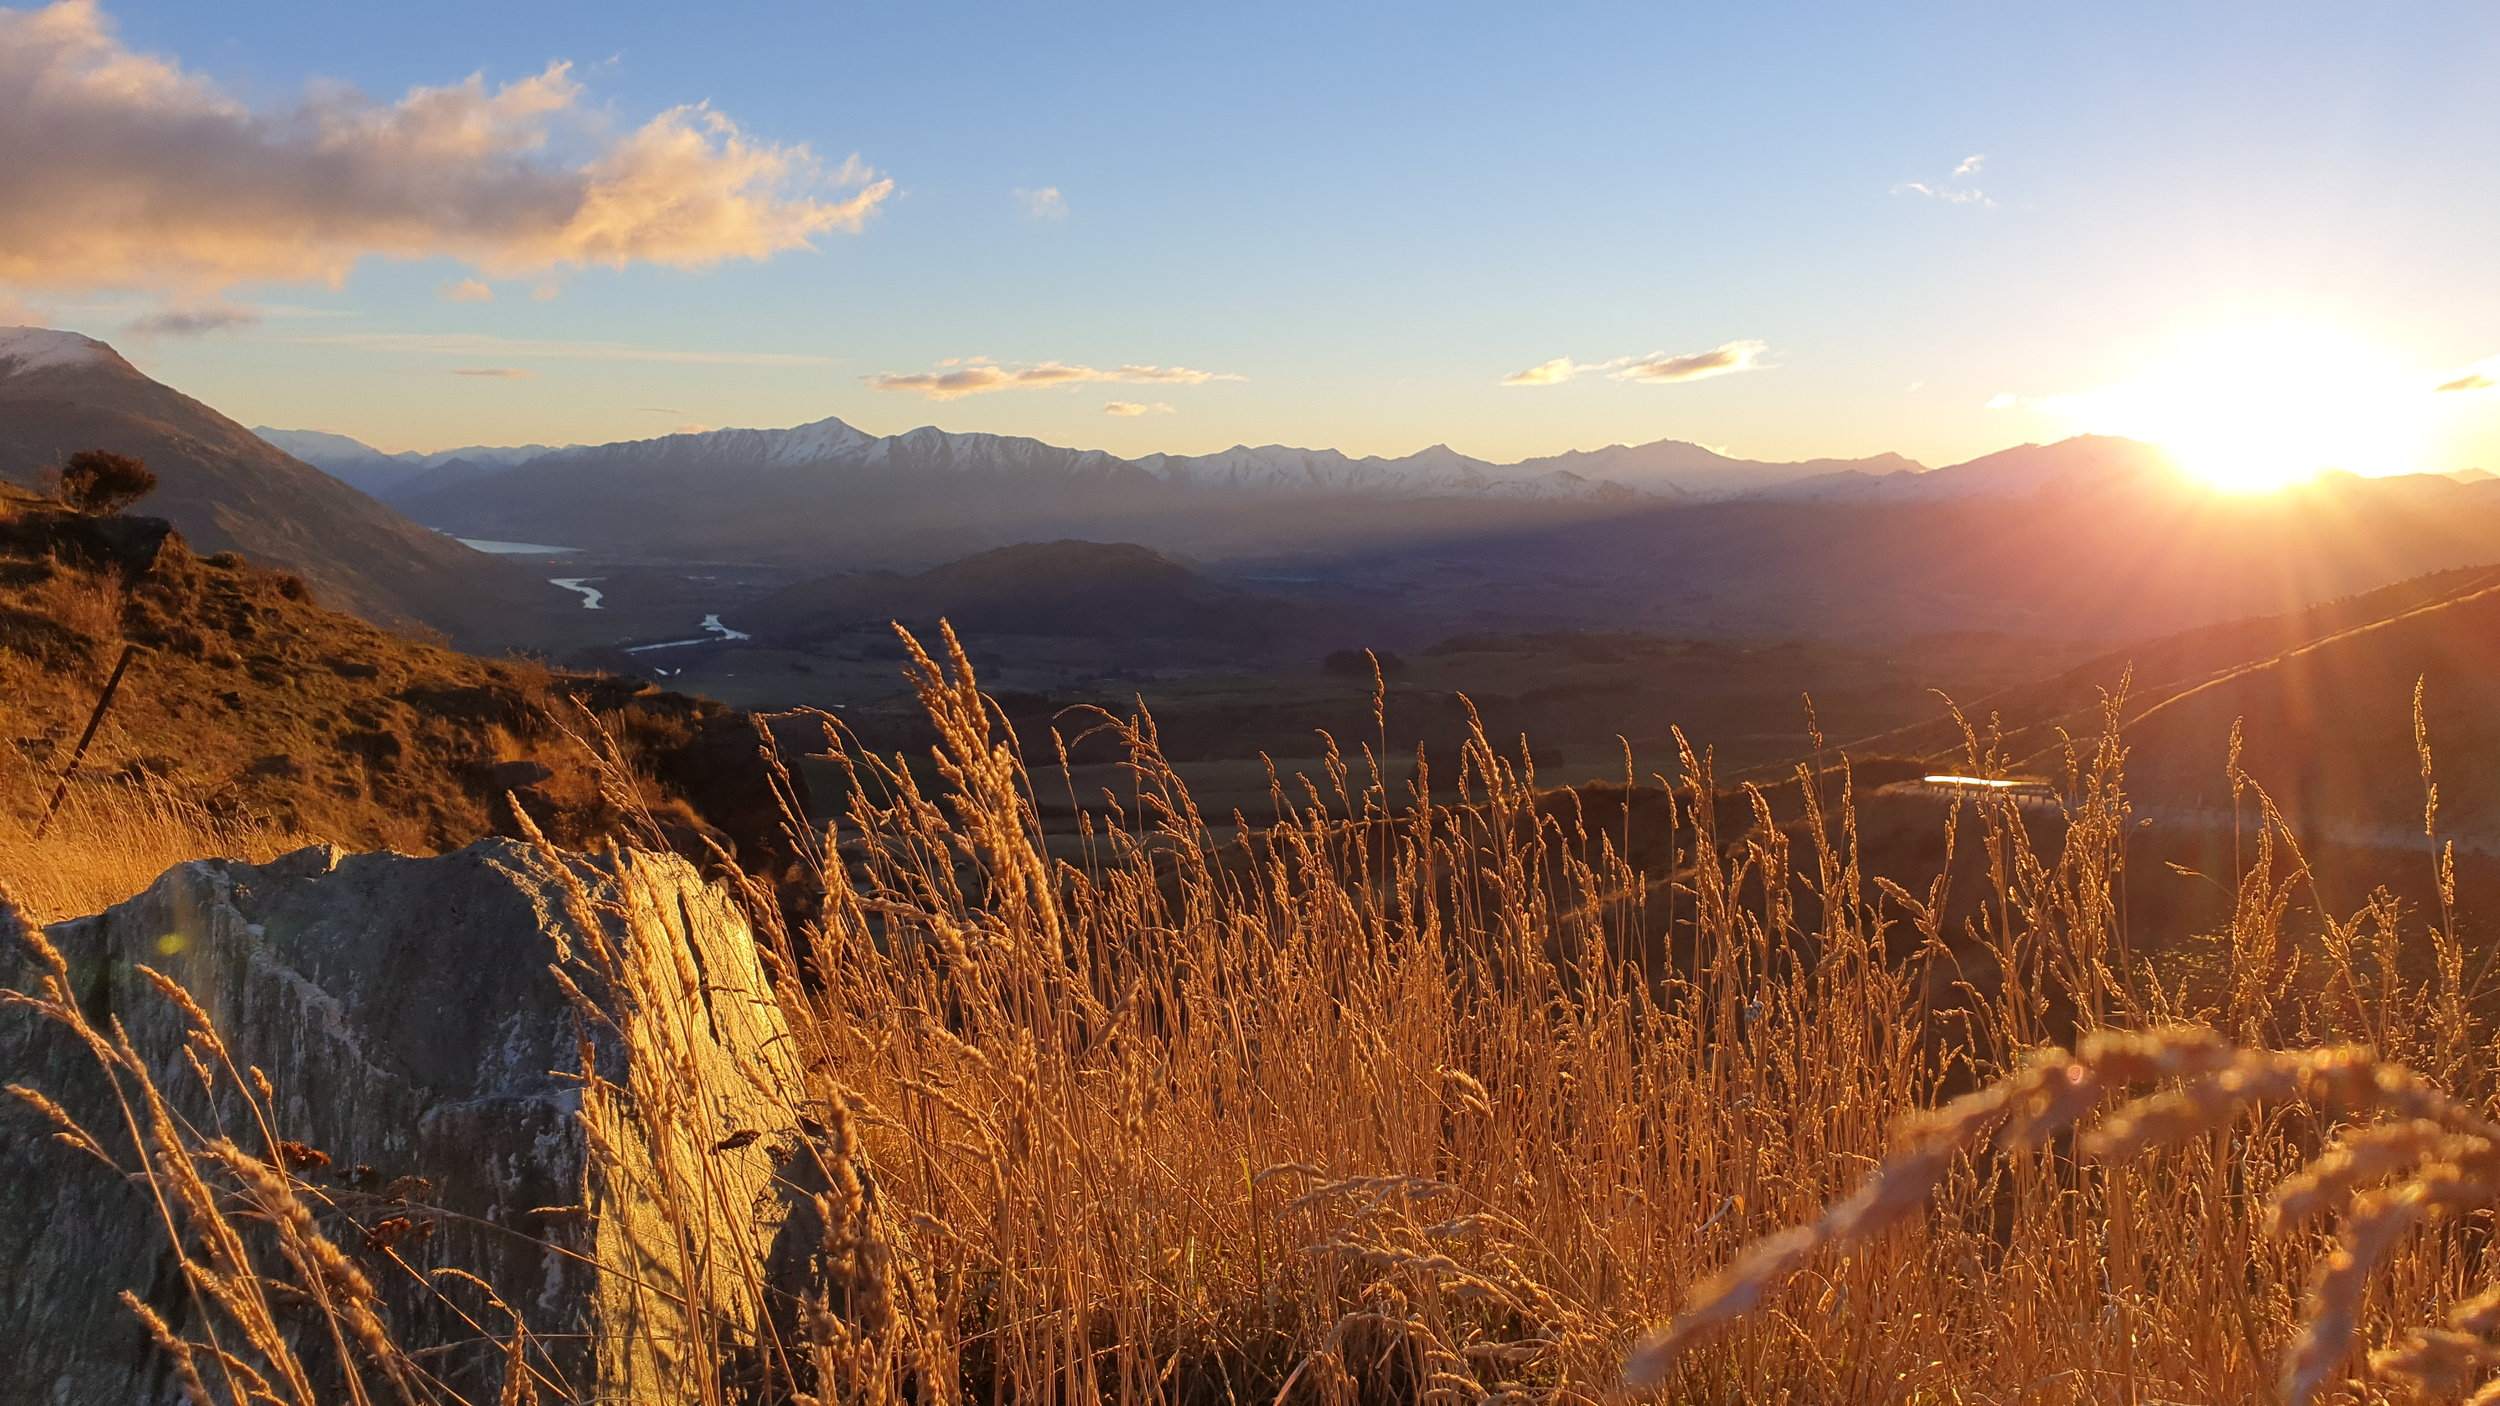 The golden sun rays over the peaks